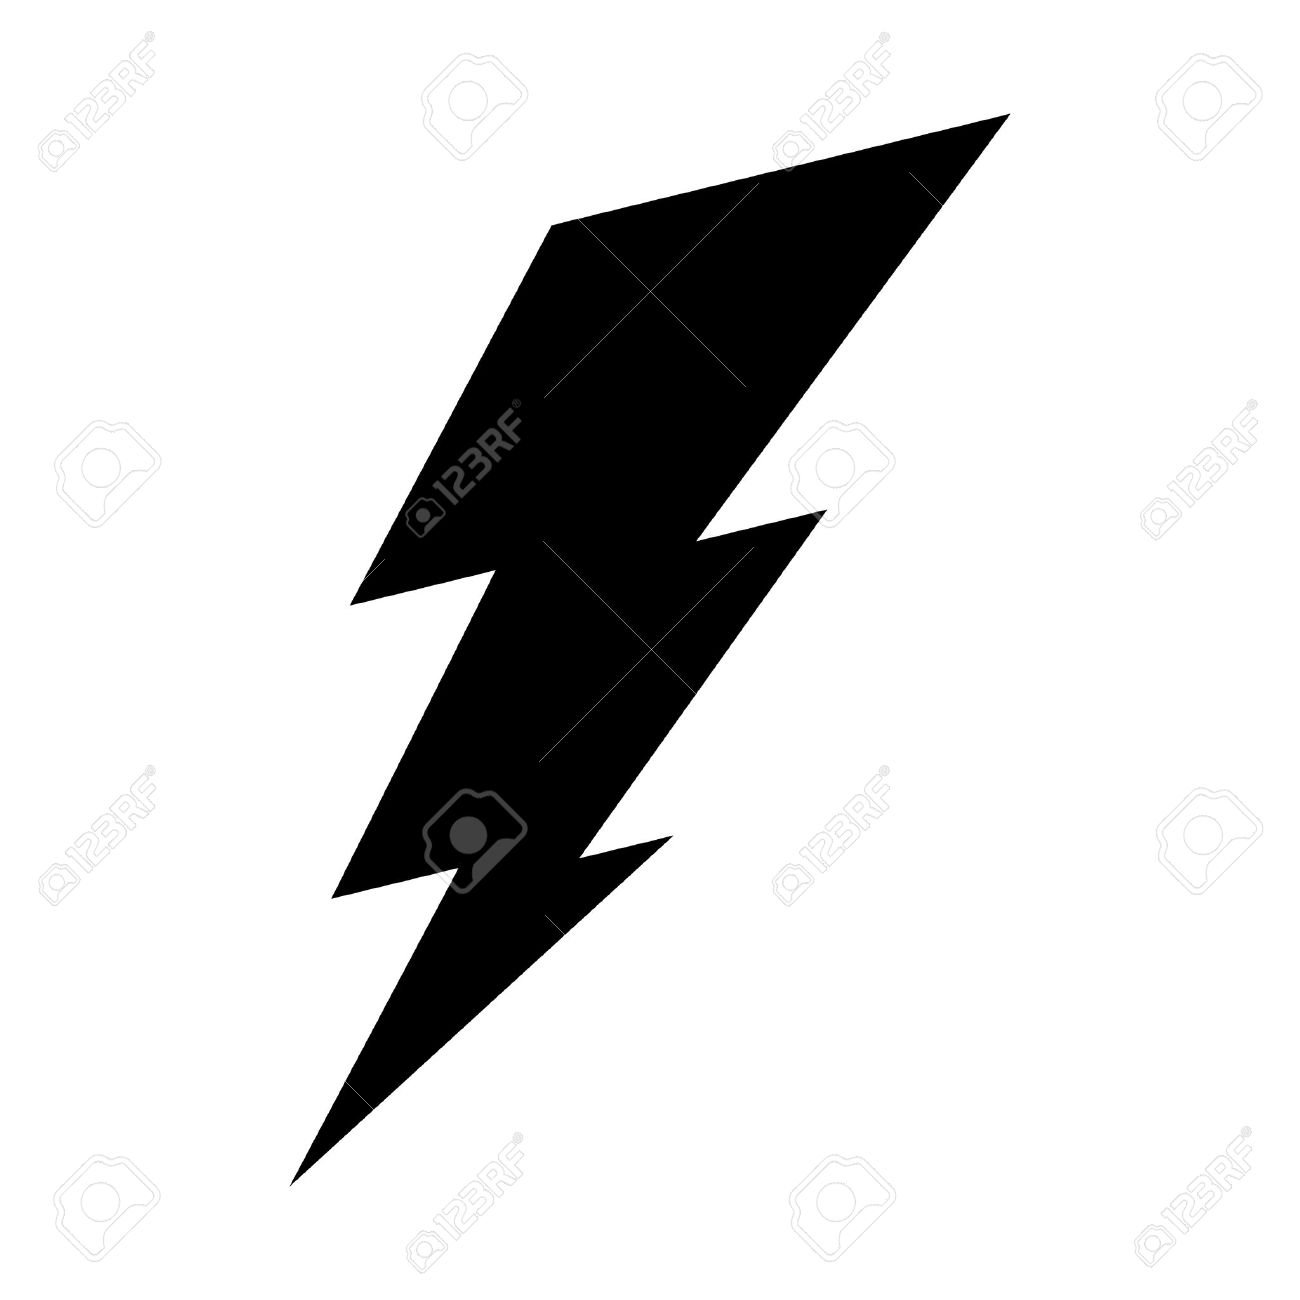 lightning bolt vector icon royalty free cliparts vectors and stock rh 123rf com vector image lightning bolts lightning bolt vector illustrator free